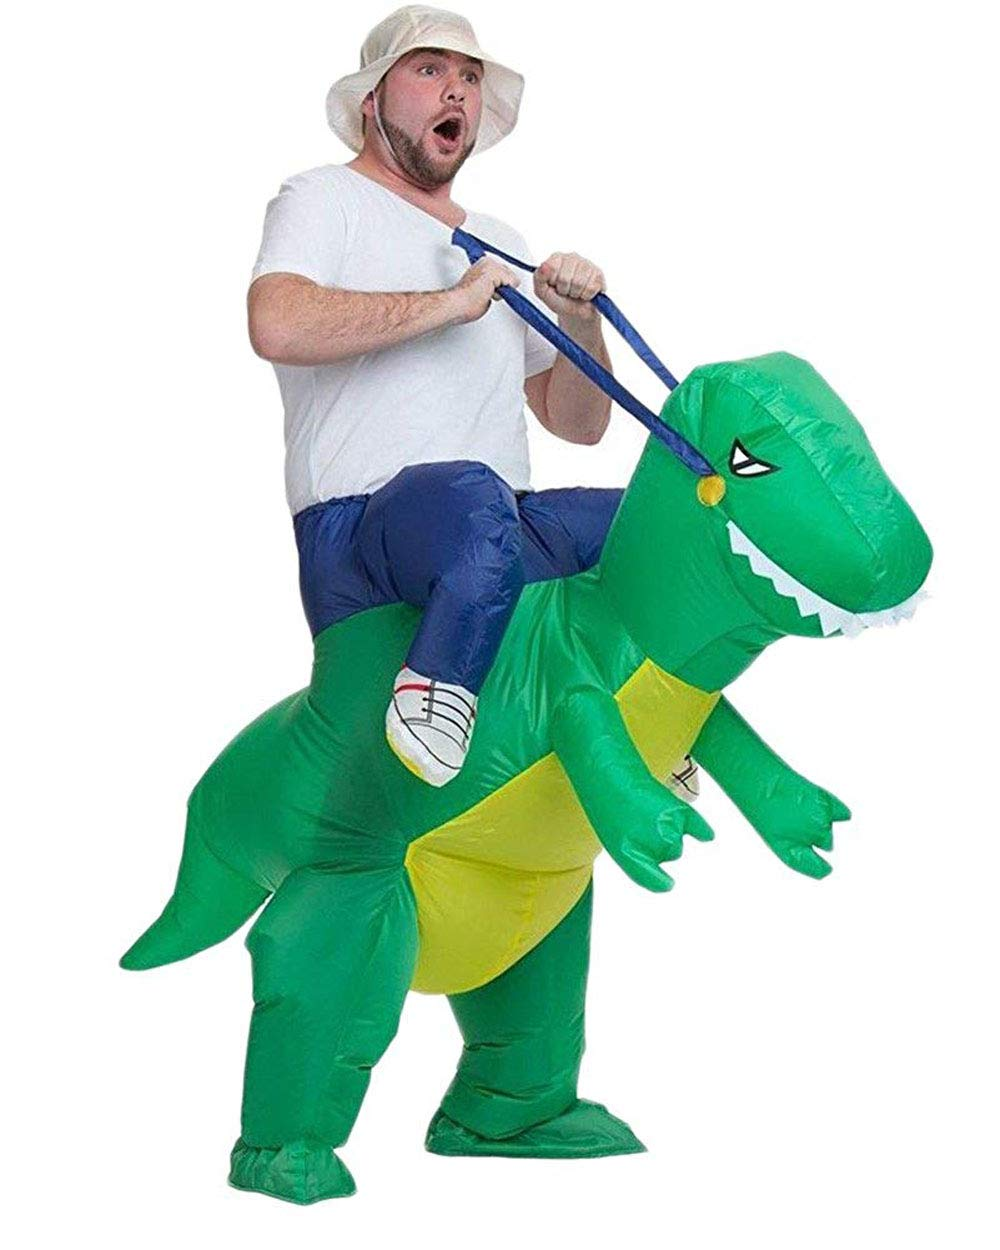 FSMY Inflatable Dinosaur Halloween Costume Fancy T-REX Party Dress Props for Adult FSMY CO. LTD FSMY-40155-445